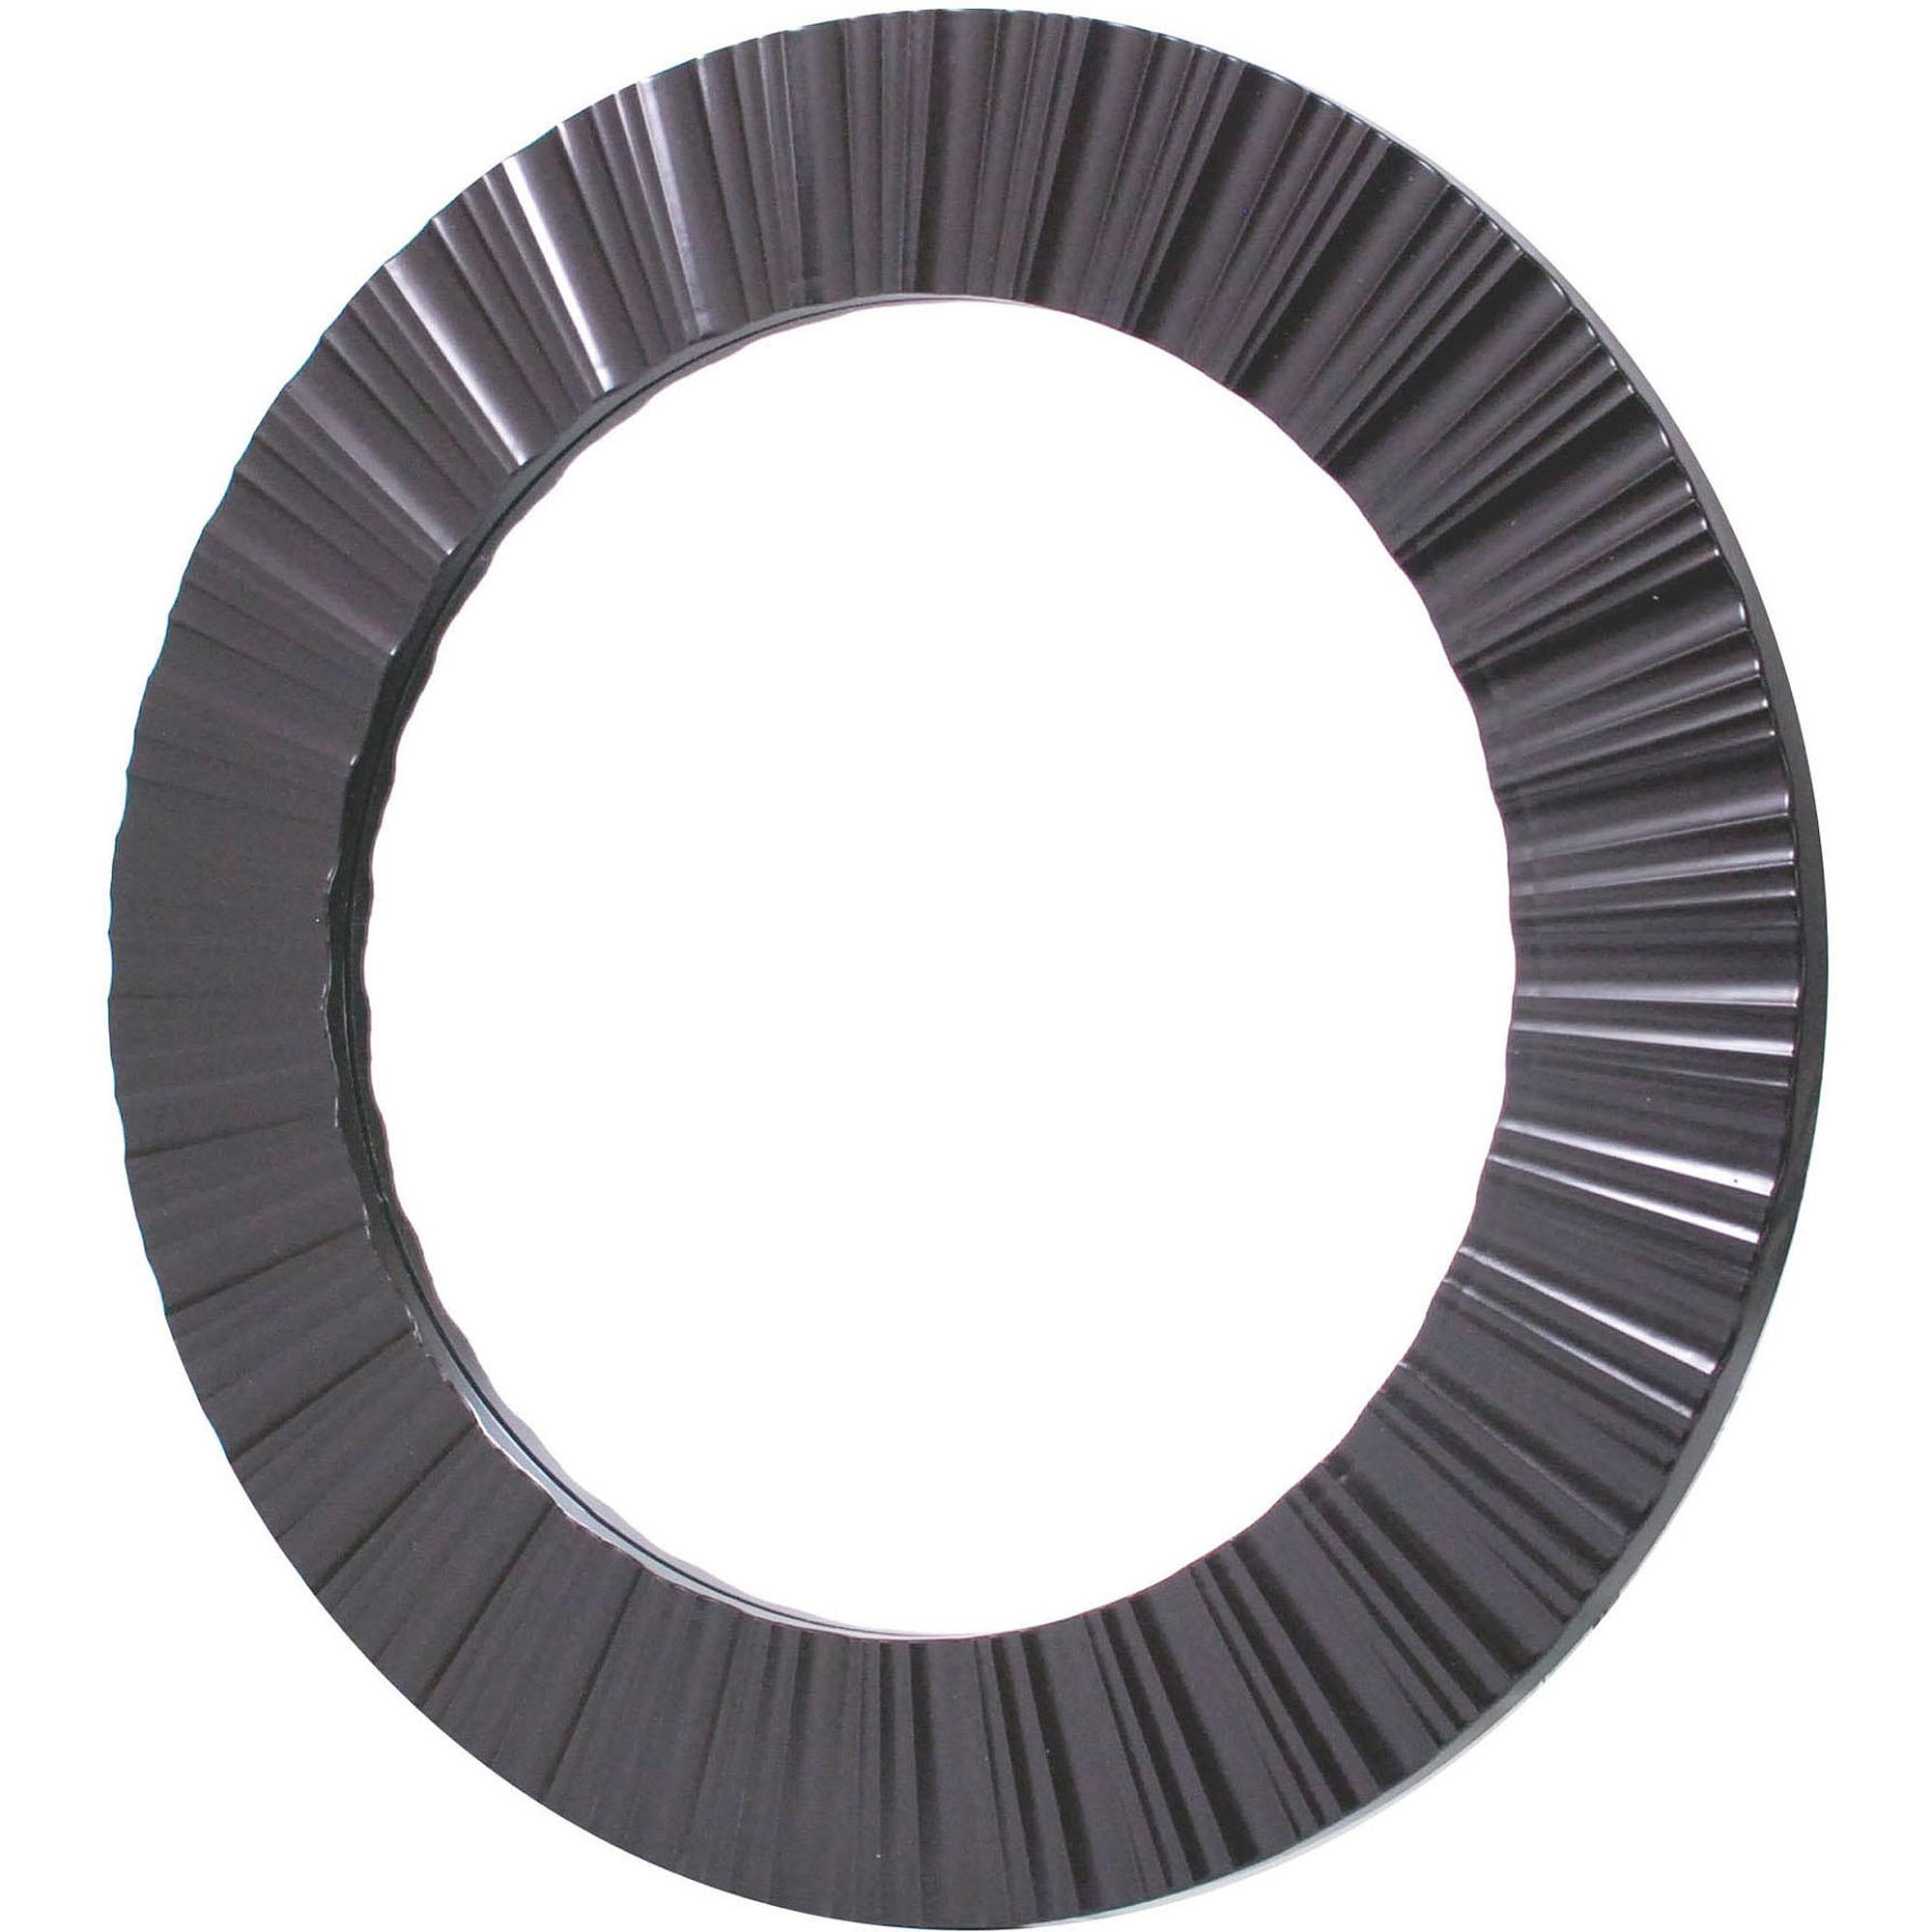 Round Mirror With Regard To Round Black Mirrors (Image 17 of 20)